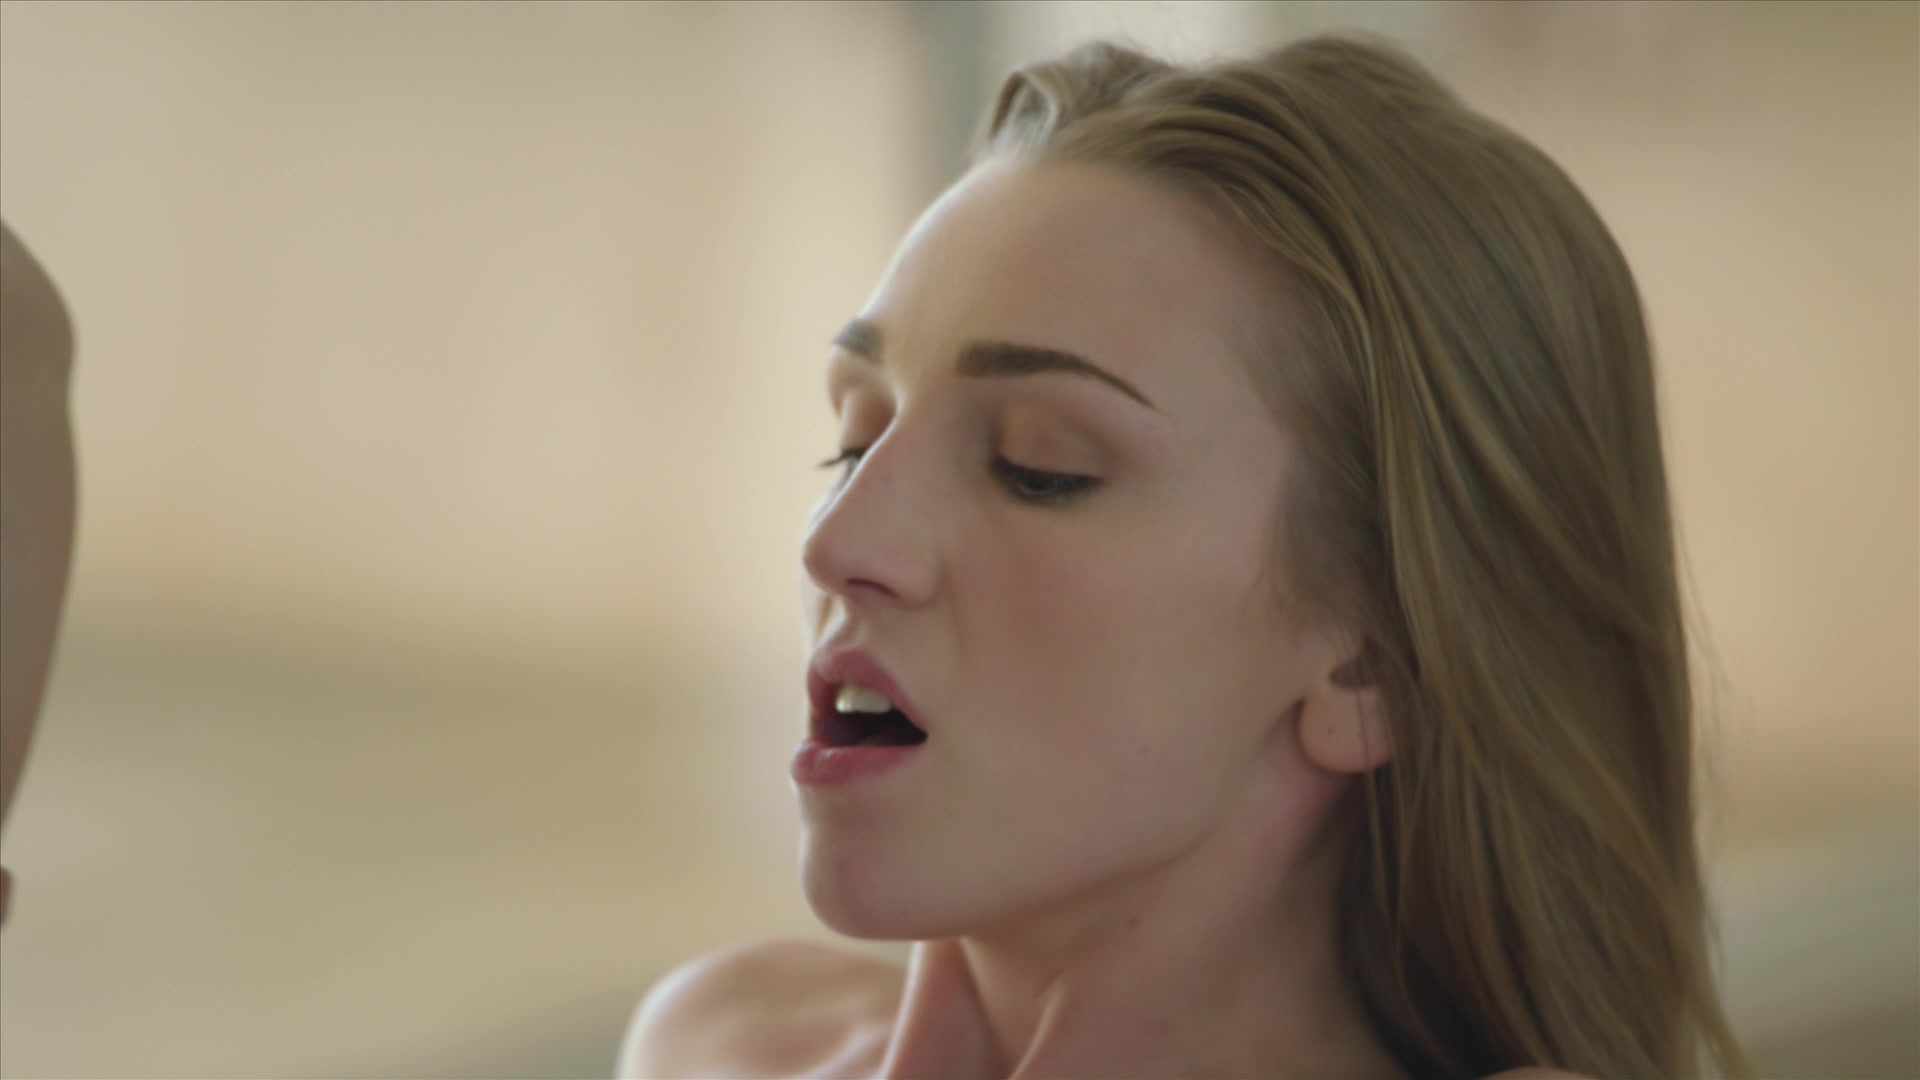 Scene with Kendra Sunderland - image 14 out of 20